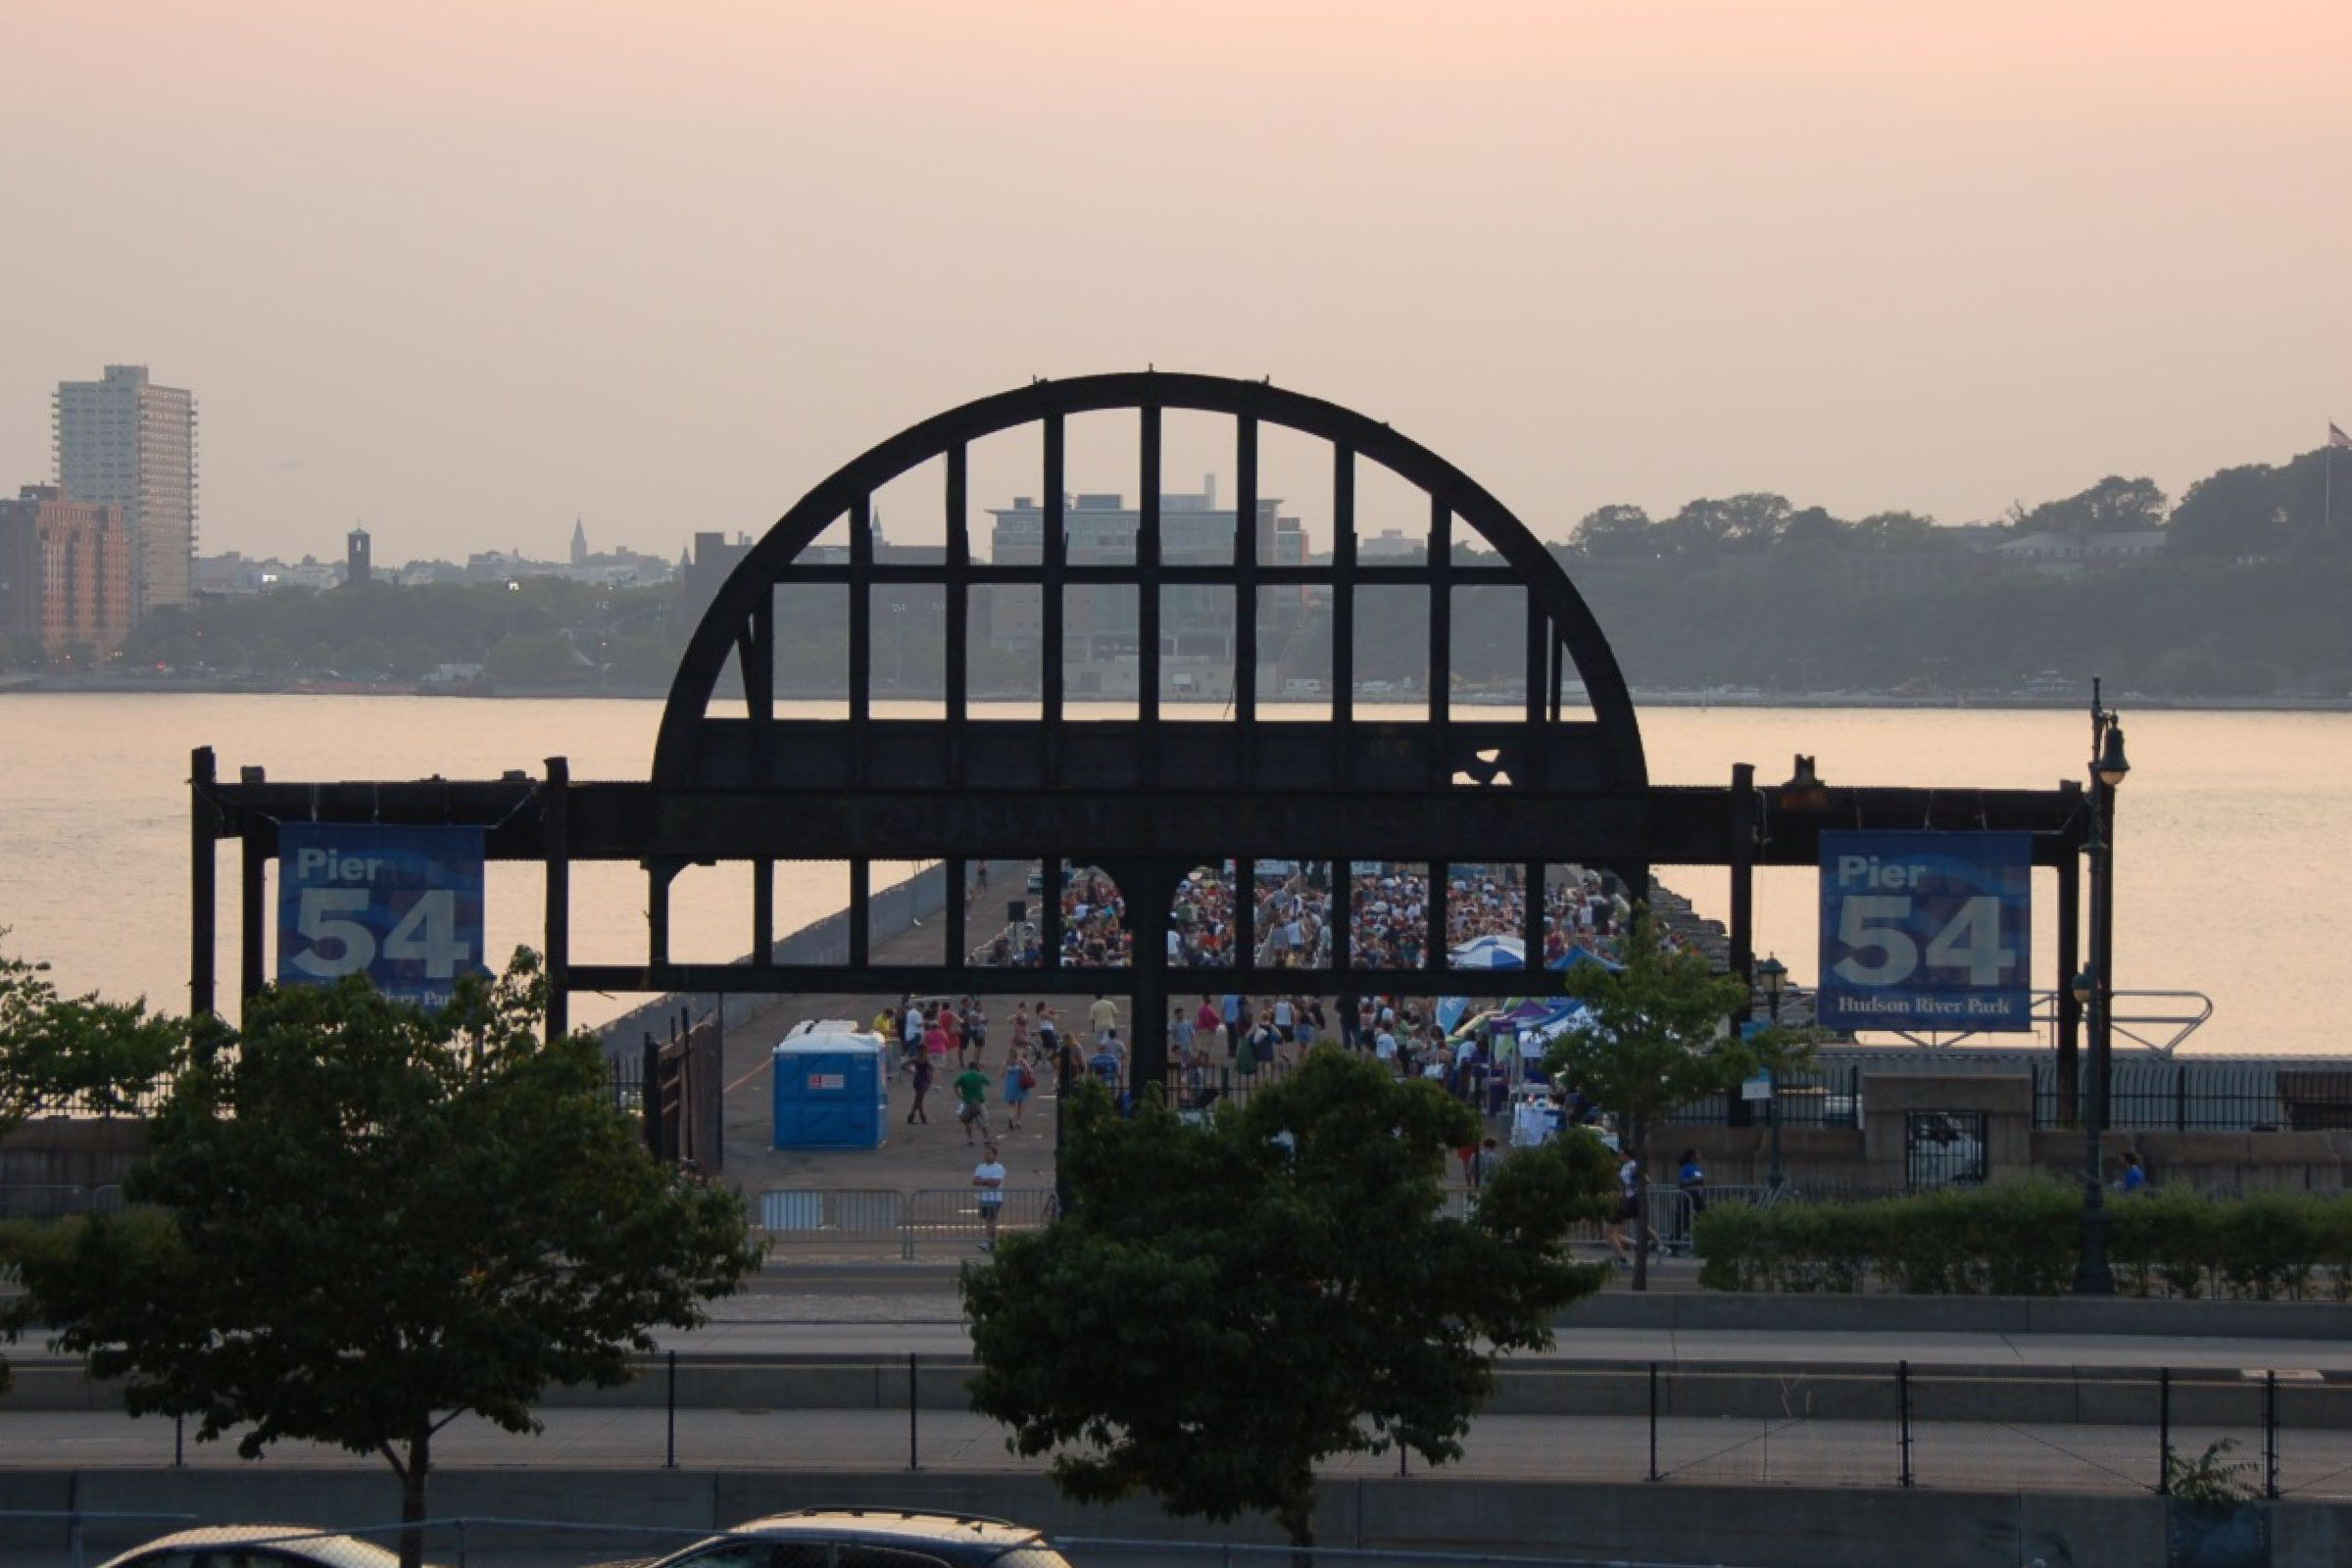 Frontal view of the Cunard Arch and Pier 54